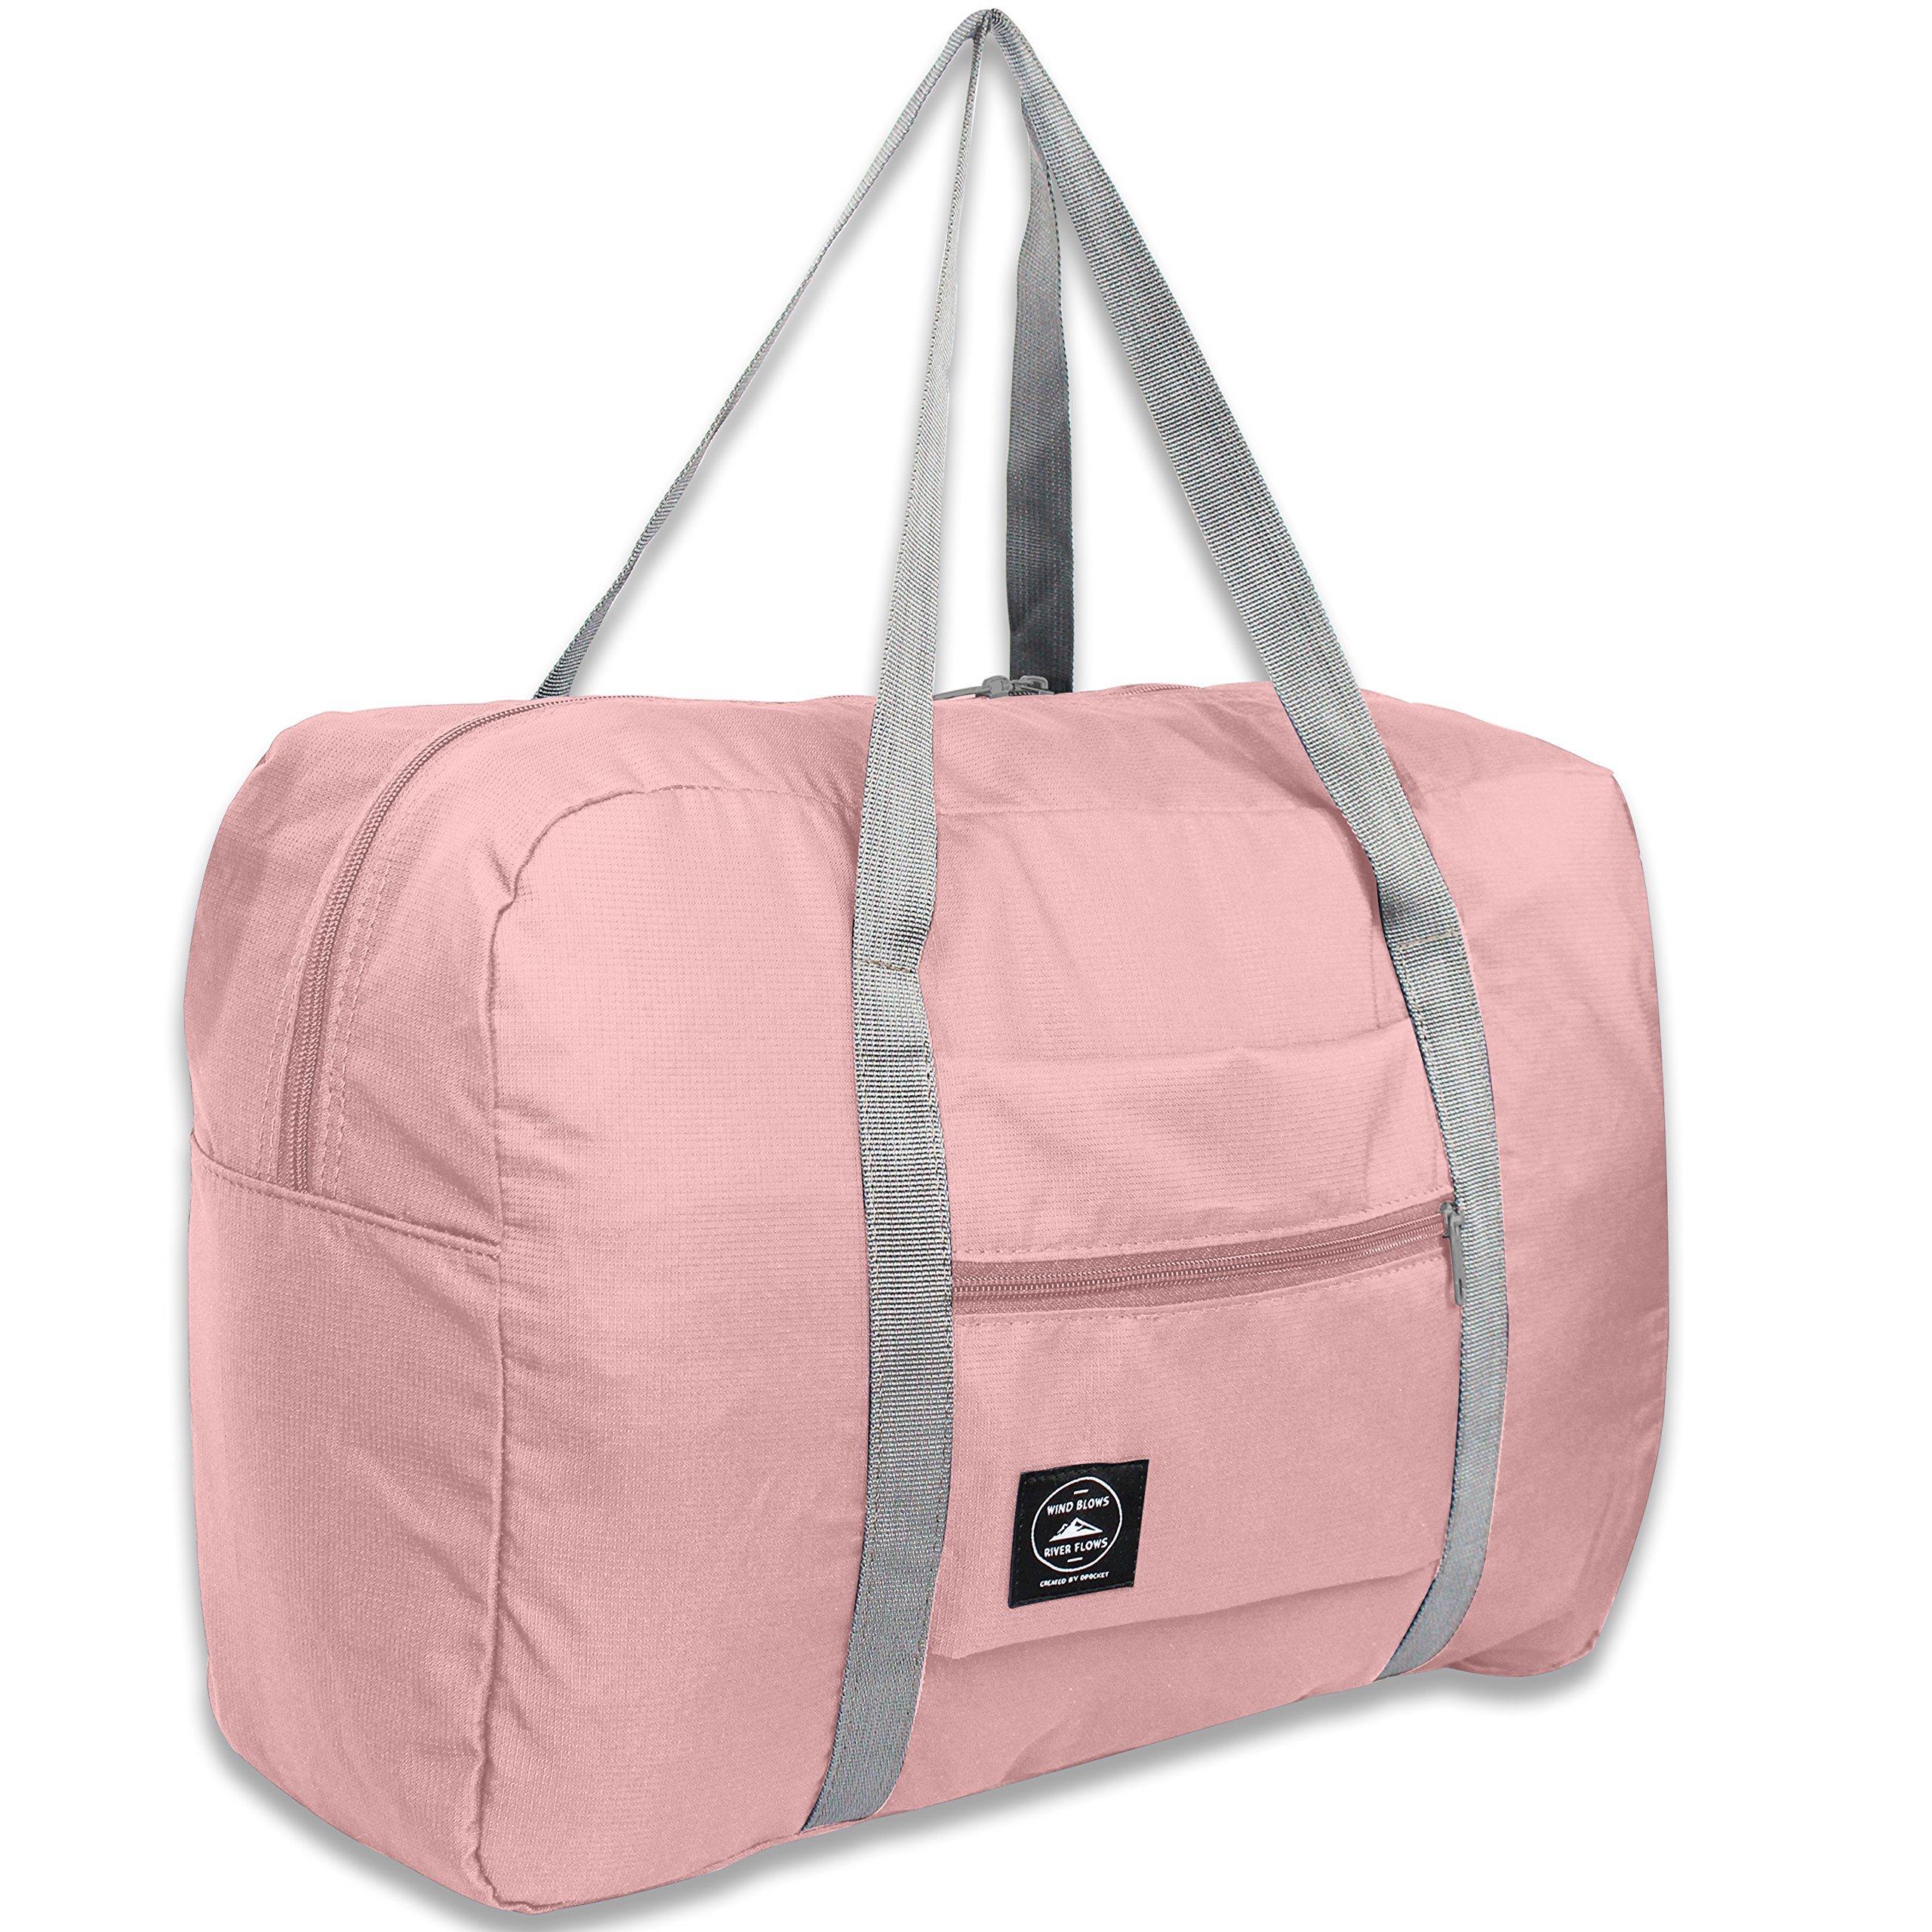 25L Travel Foldable Duffel Bag for Women & Men, Waterproof Lightweight travel Luggage bag for Sports, Gym, Vacation (II-Pink)